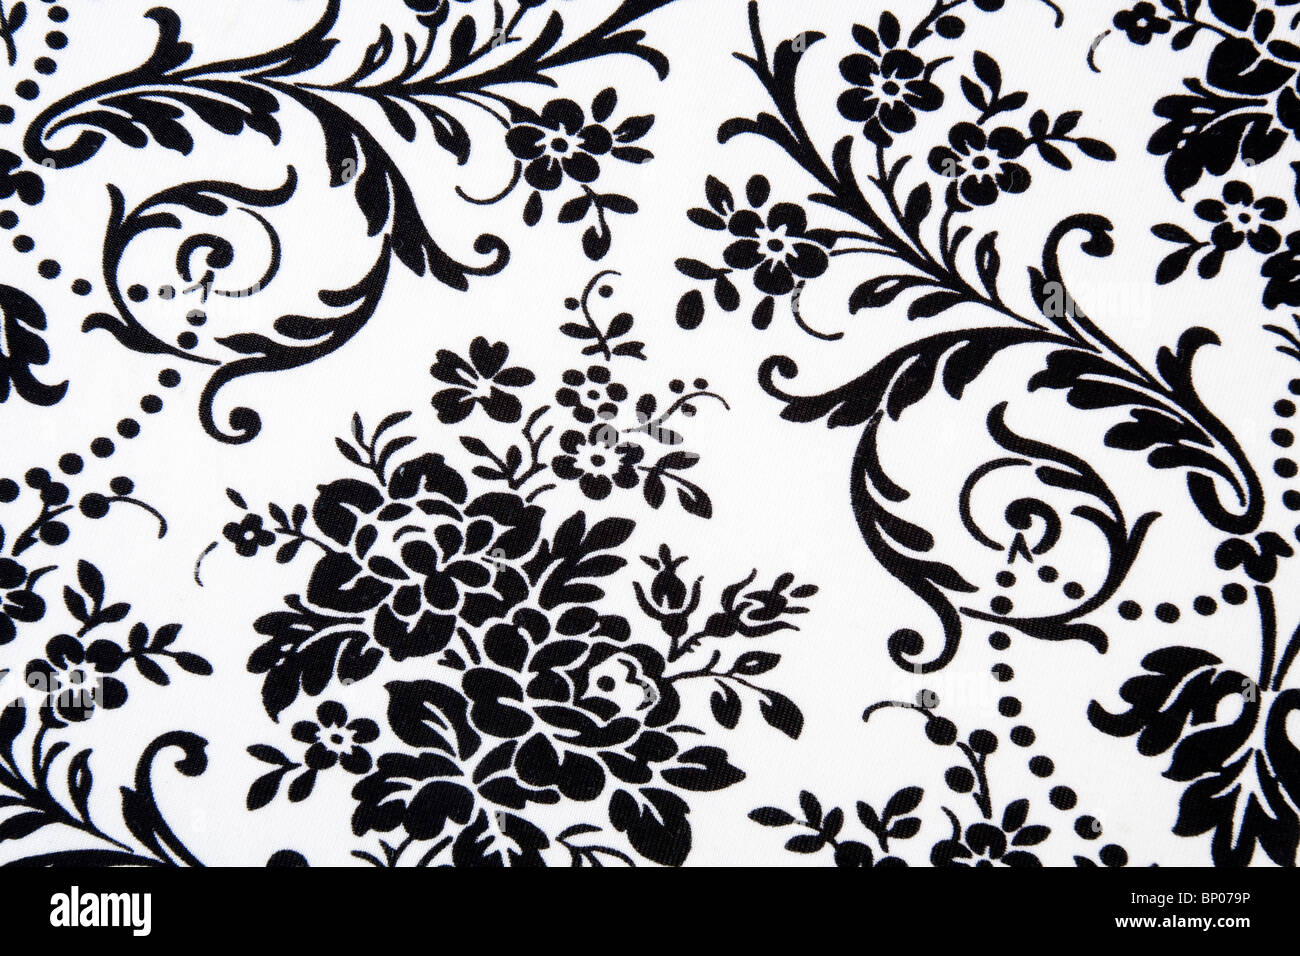 Black White Seamless Floral Pattern Stock Photo 30738562 Alamy